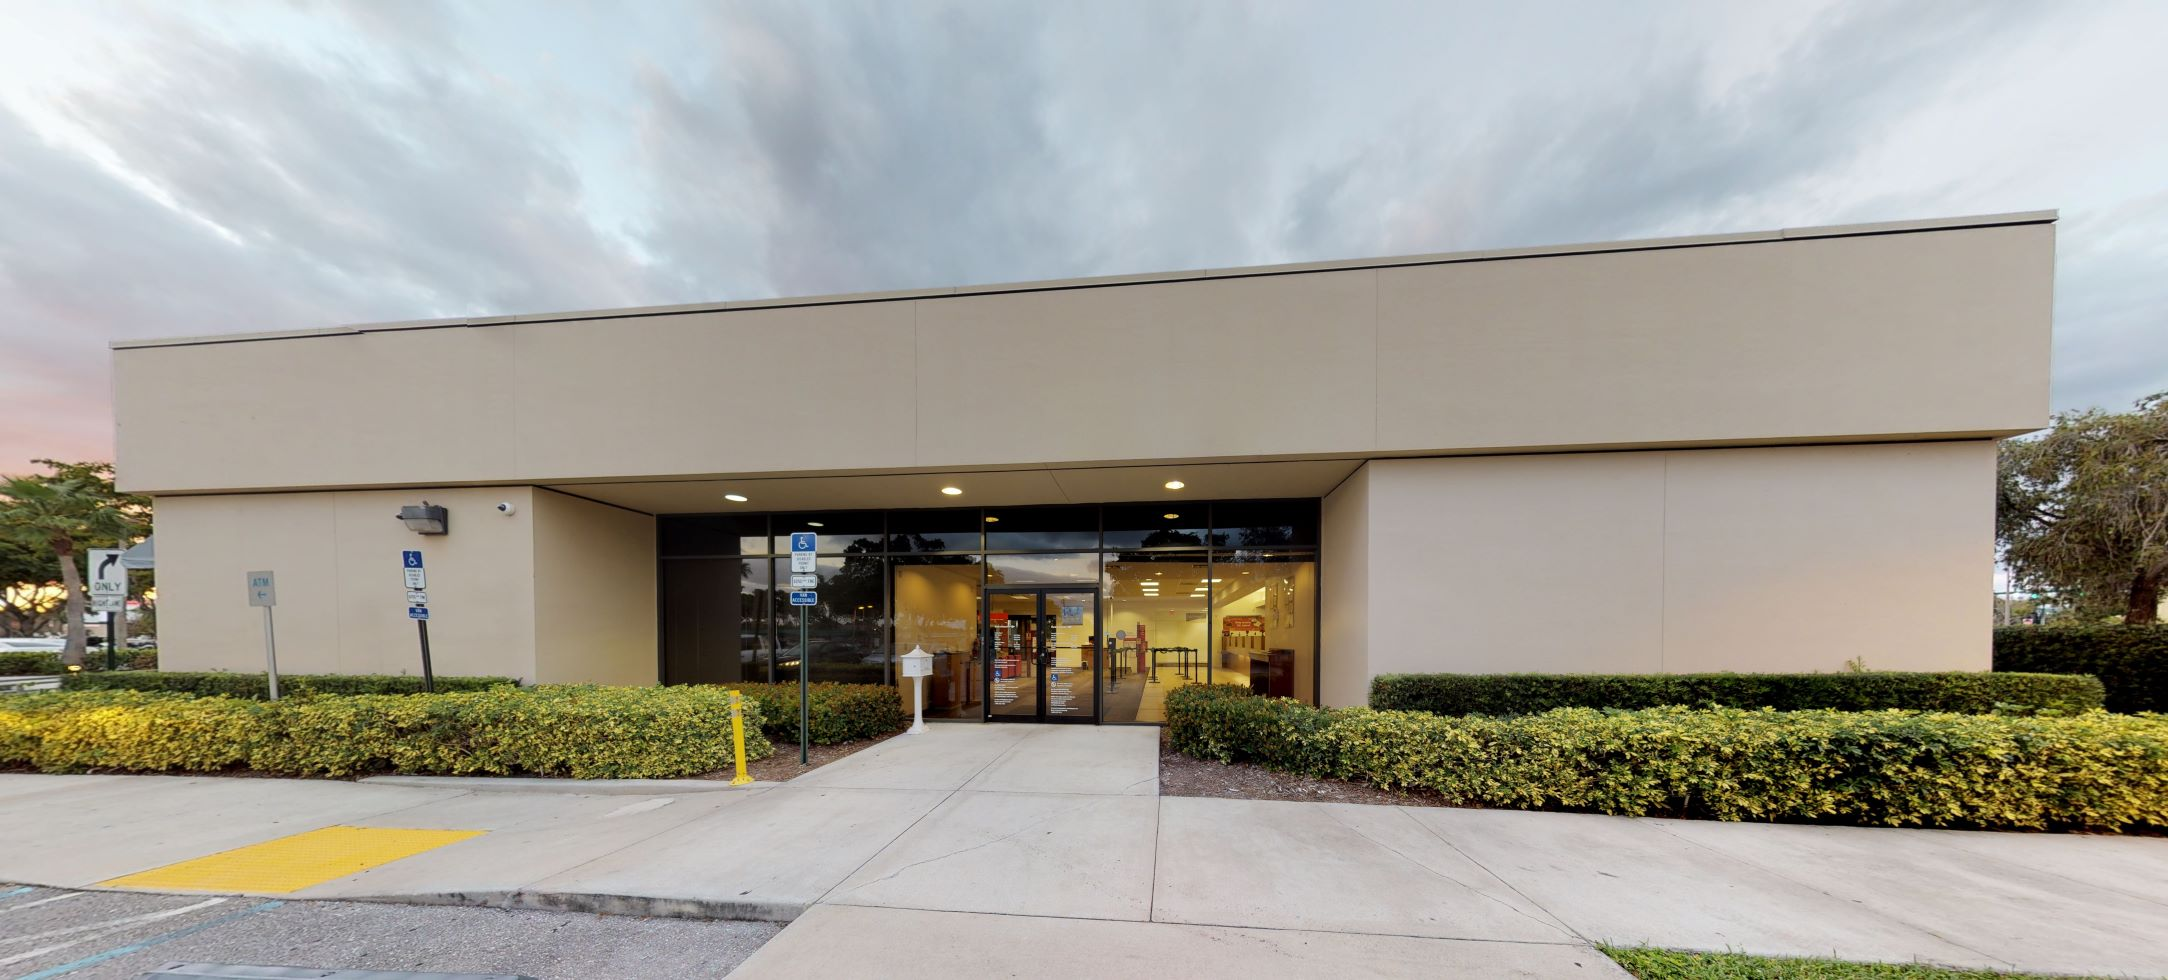 Bank of America financial center with walk-up ATM | 1974 Palm Beach Lakes Blvd, West Palm Beach, FL 33409